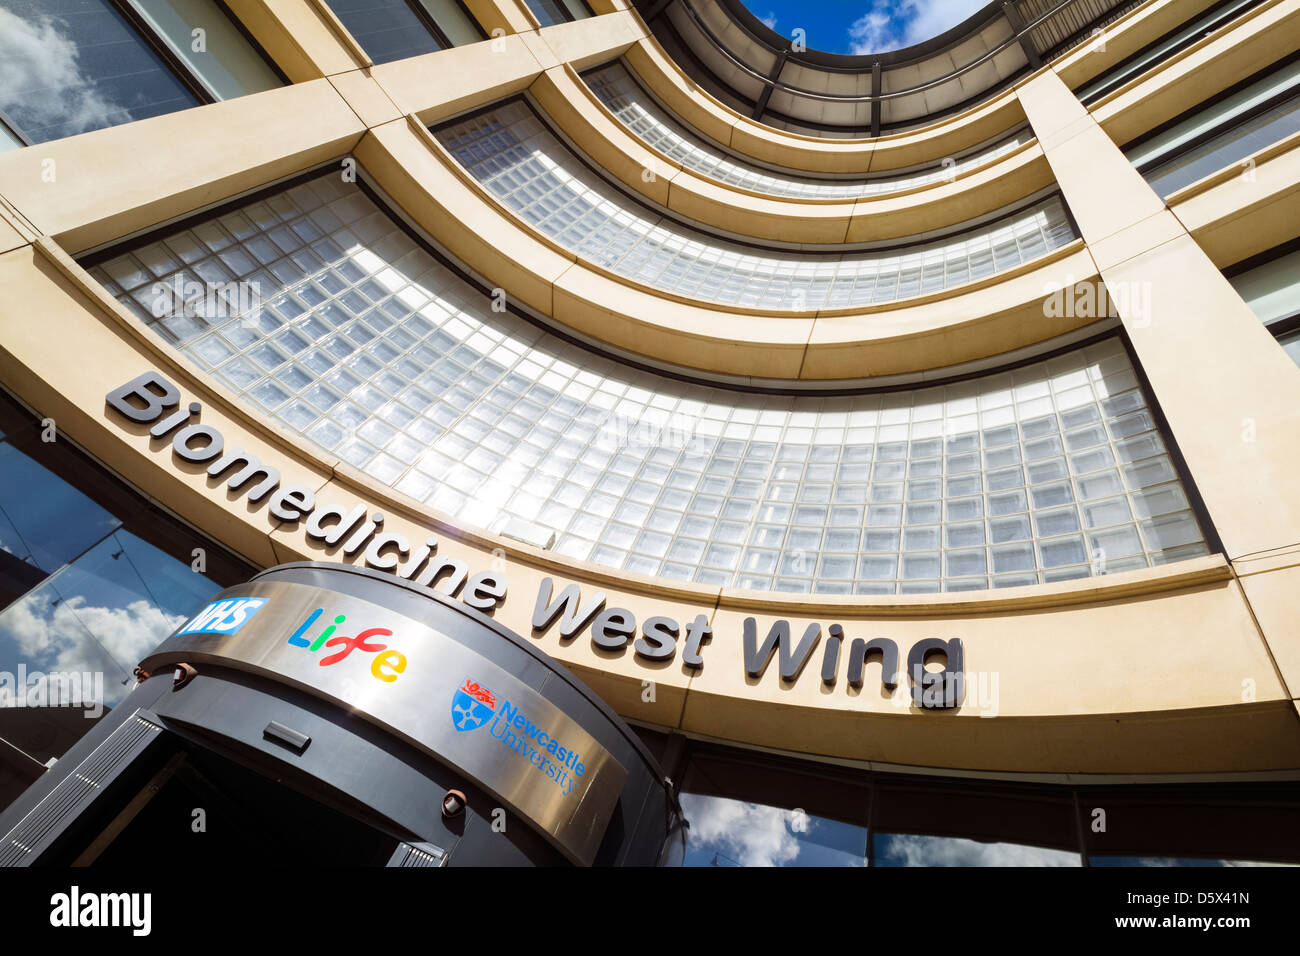 Biomedicine West Wing at Life, Centre for world class science. - Stock Image